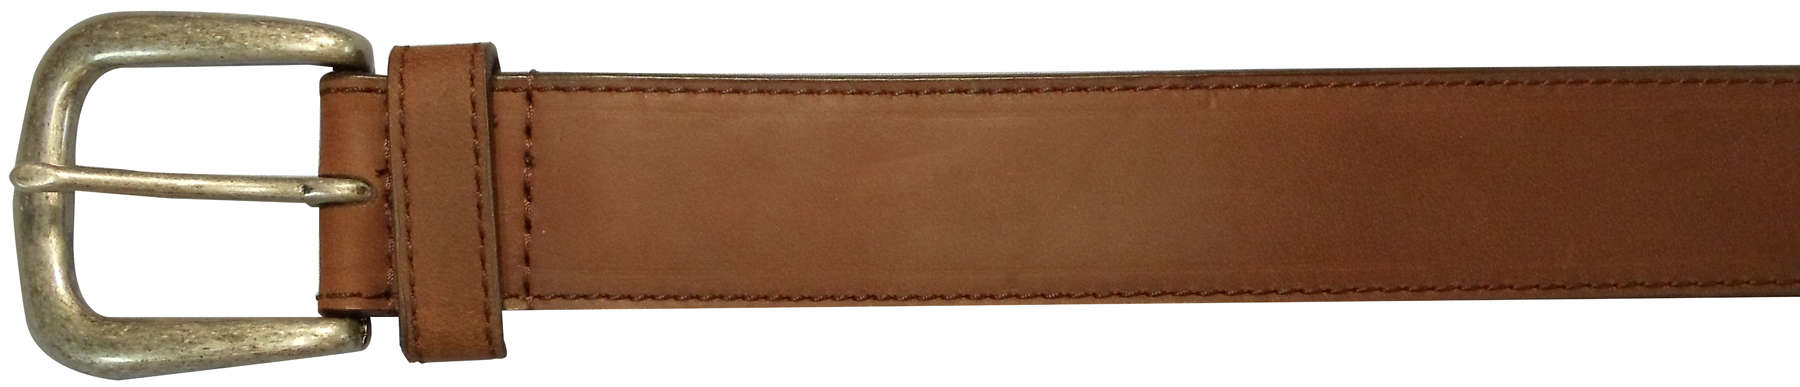 "10625410240 - 40"" Plain Brown Leather Field & Stream Belt"